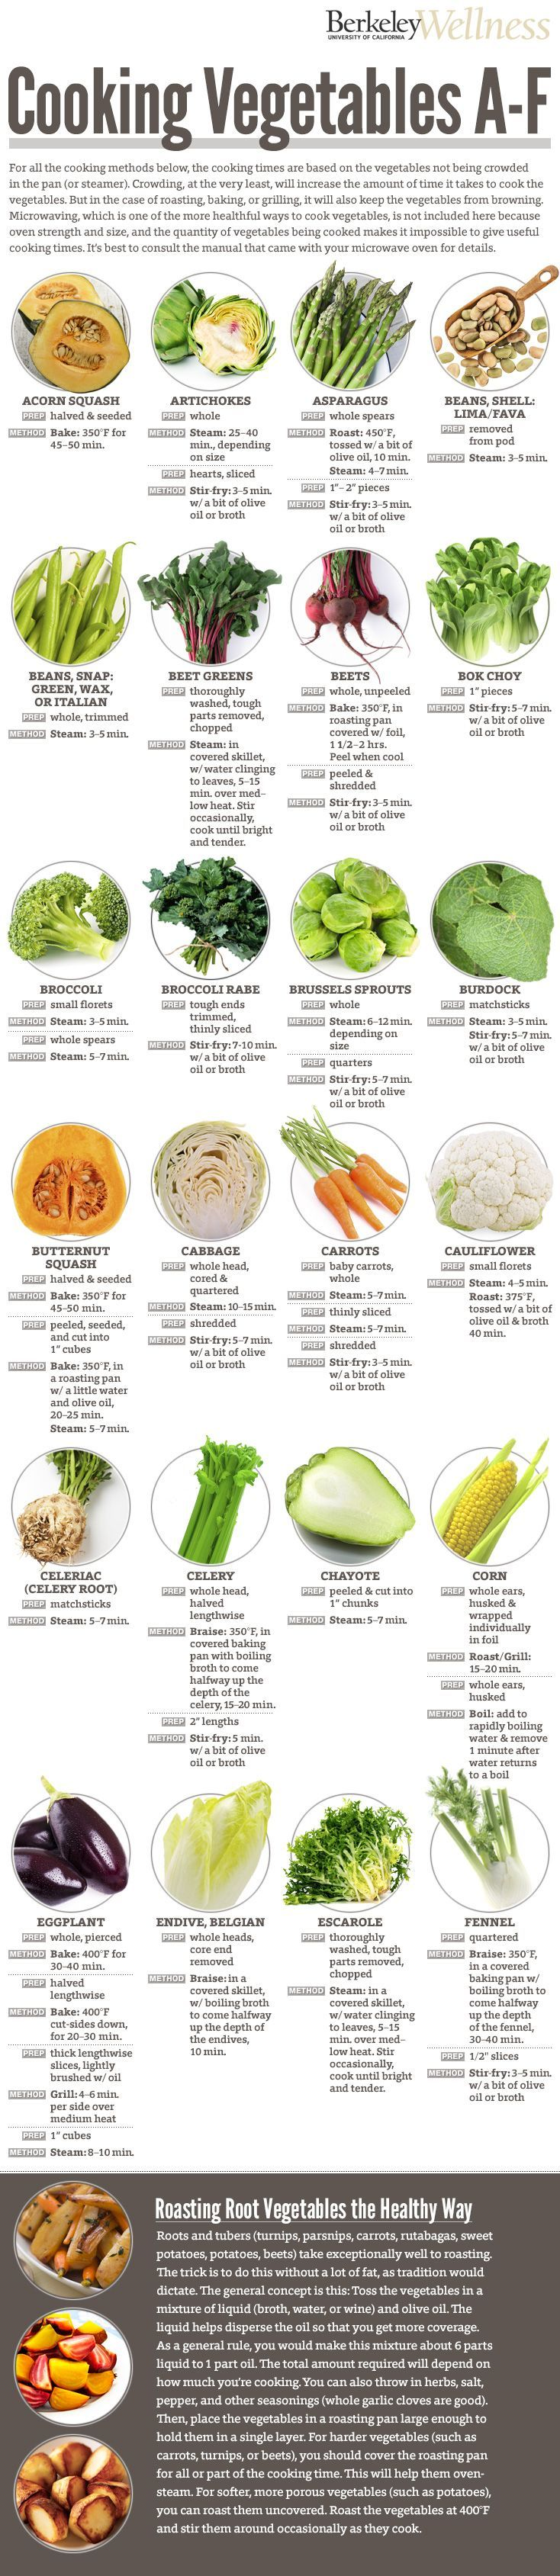 awesome PART I: How to Cook Vegetables the healthy way (from Acorn squash to Fennel)